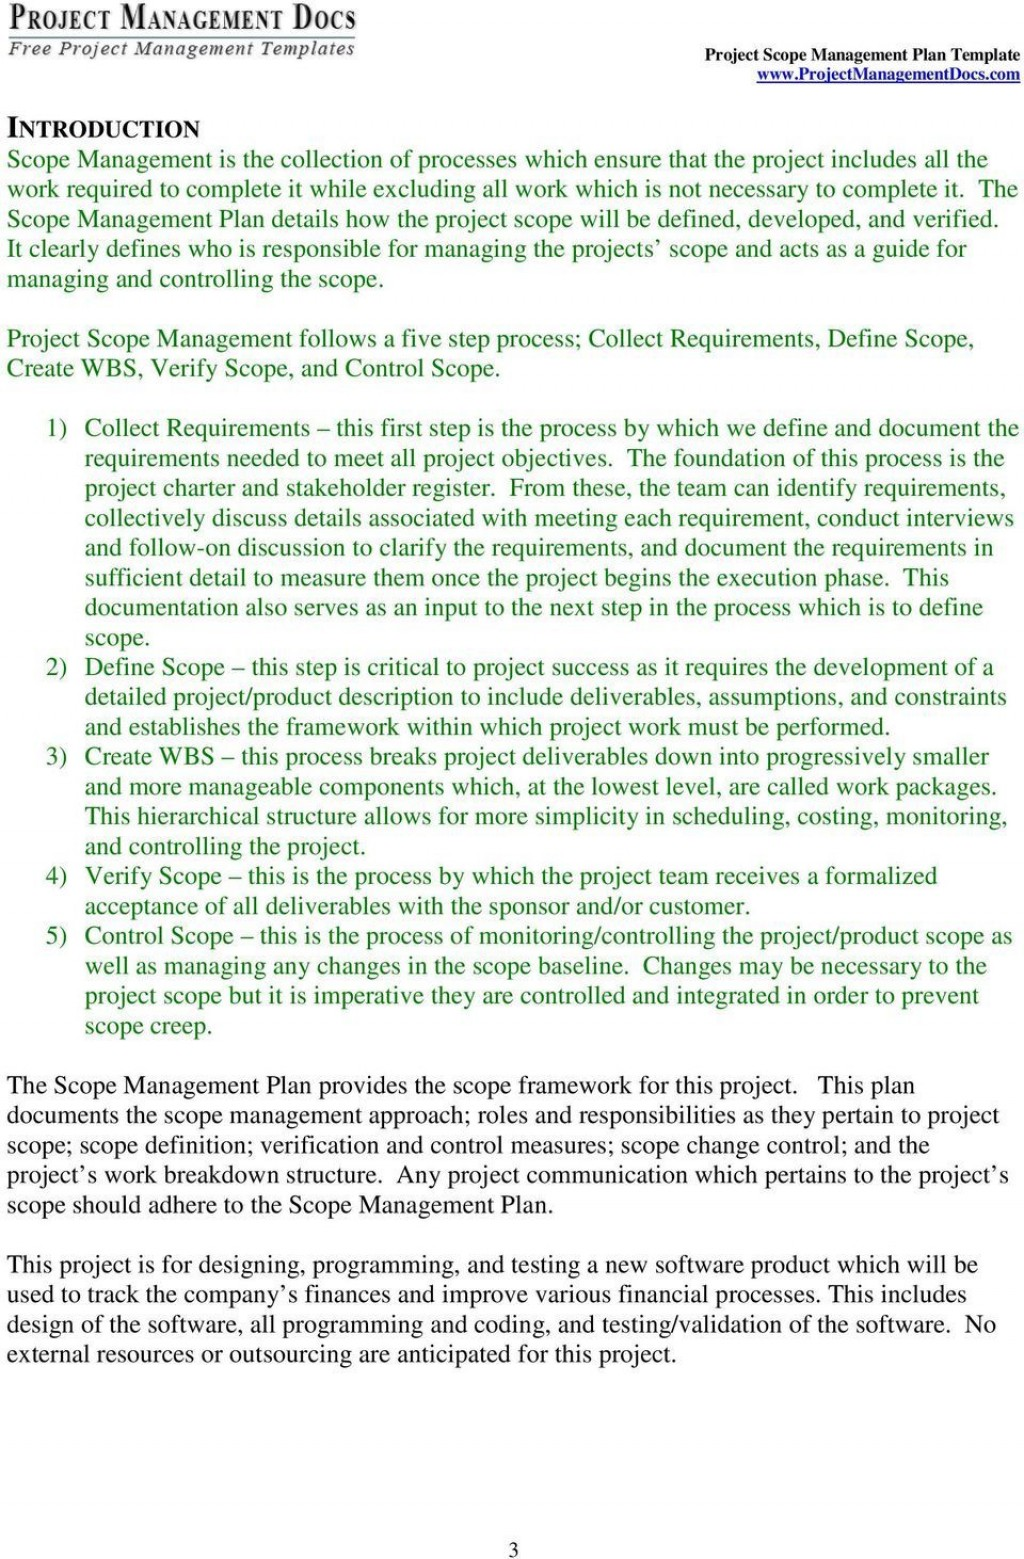 004 Staggering Project Scope Management Plan Template Free Sample Large